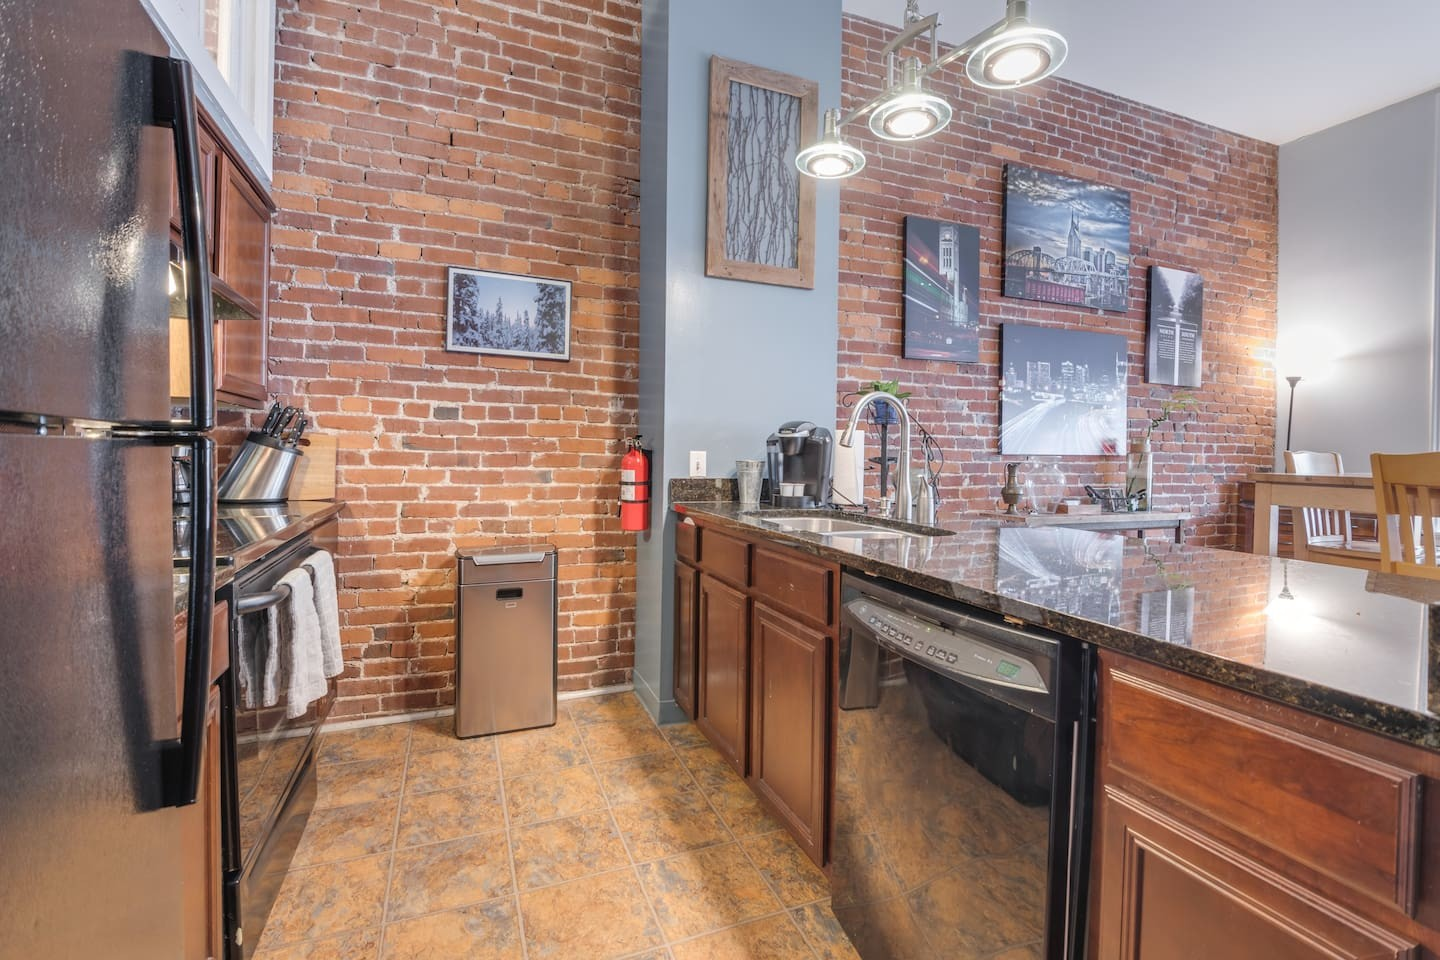 178 2nd Ave, N Property Photo - Nashville, TN real estate listing